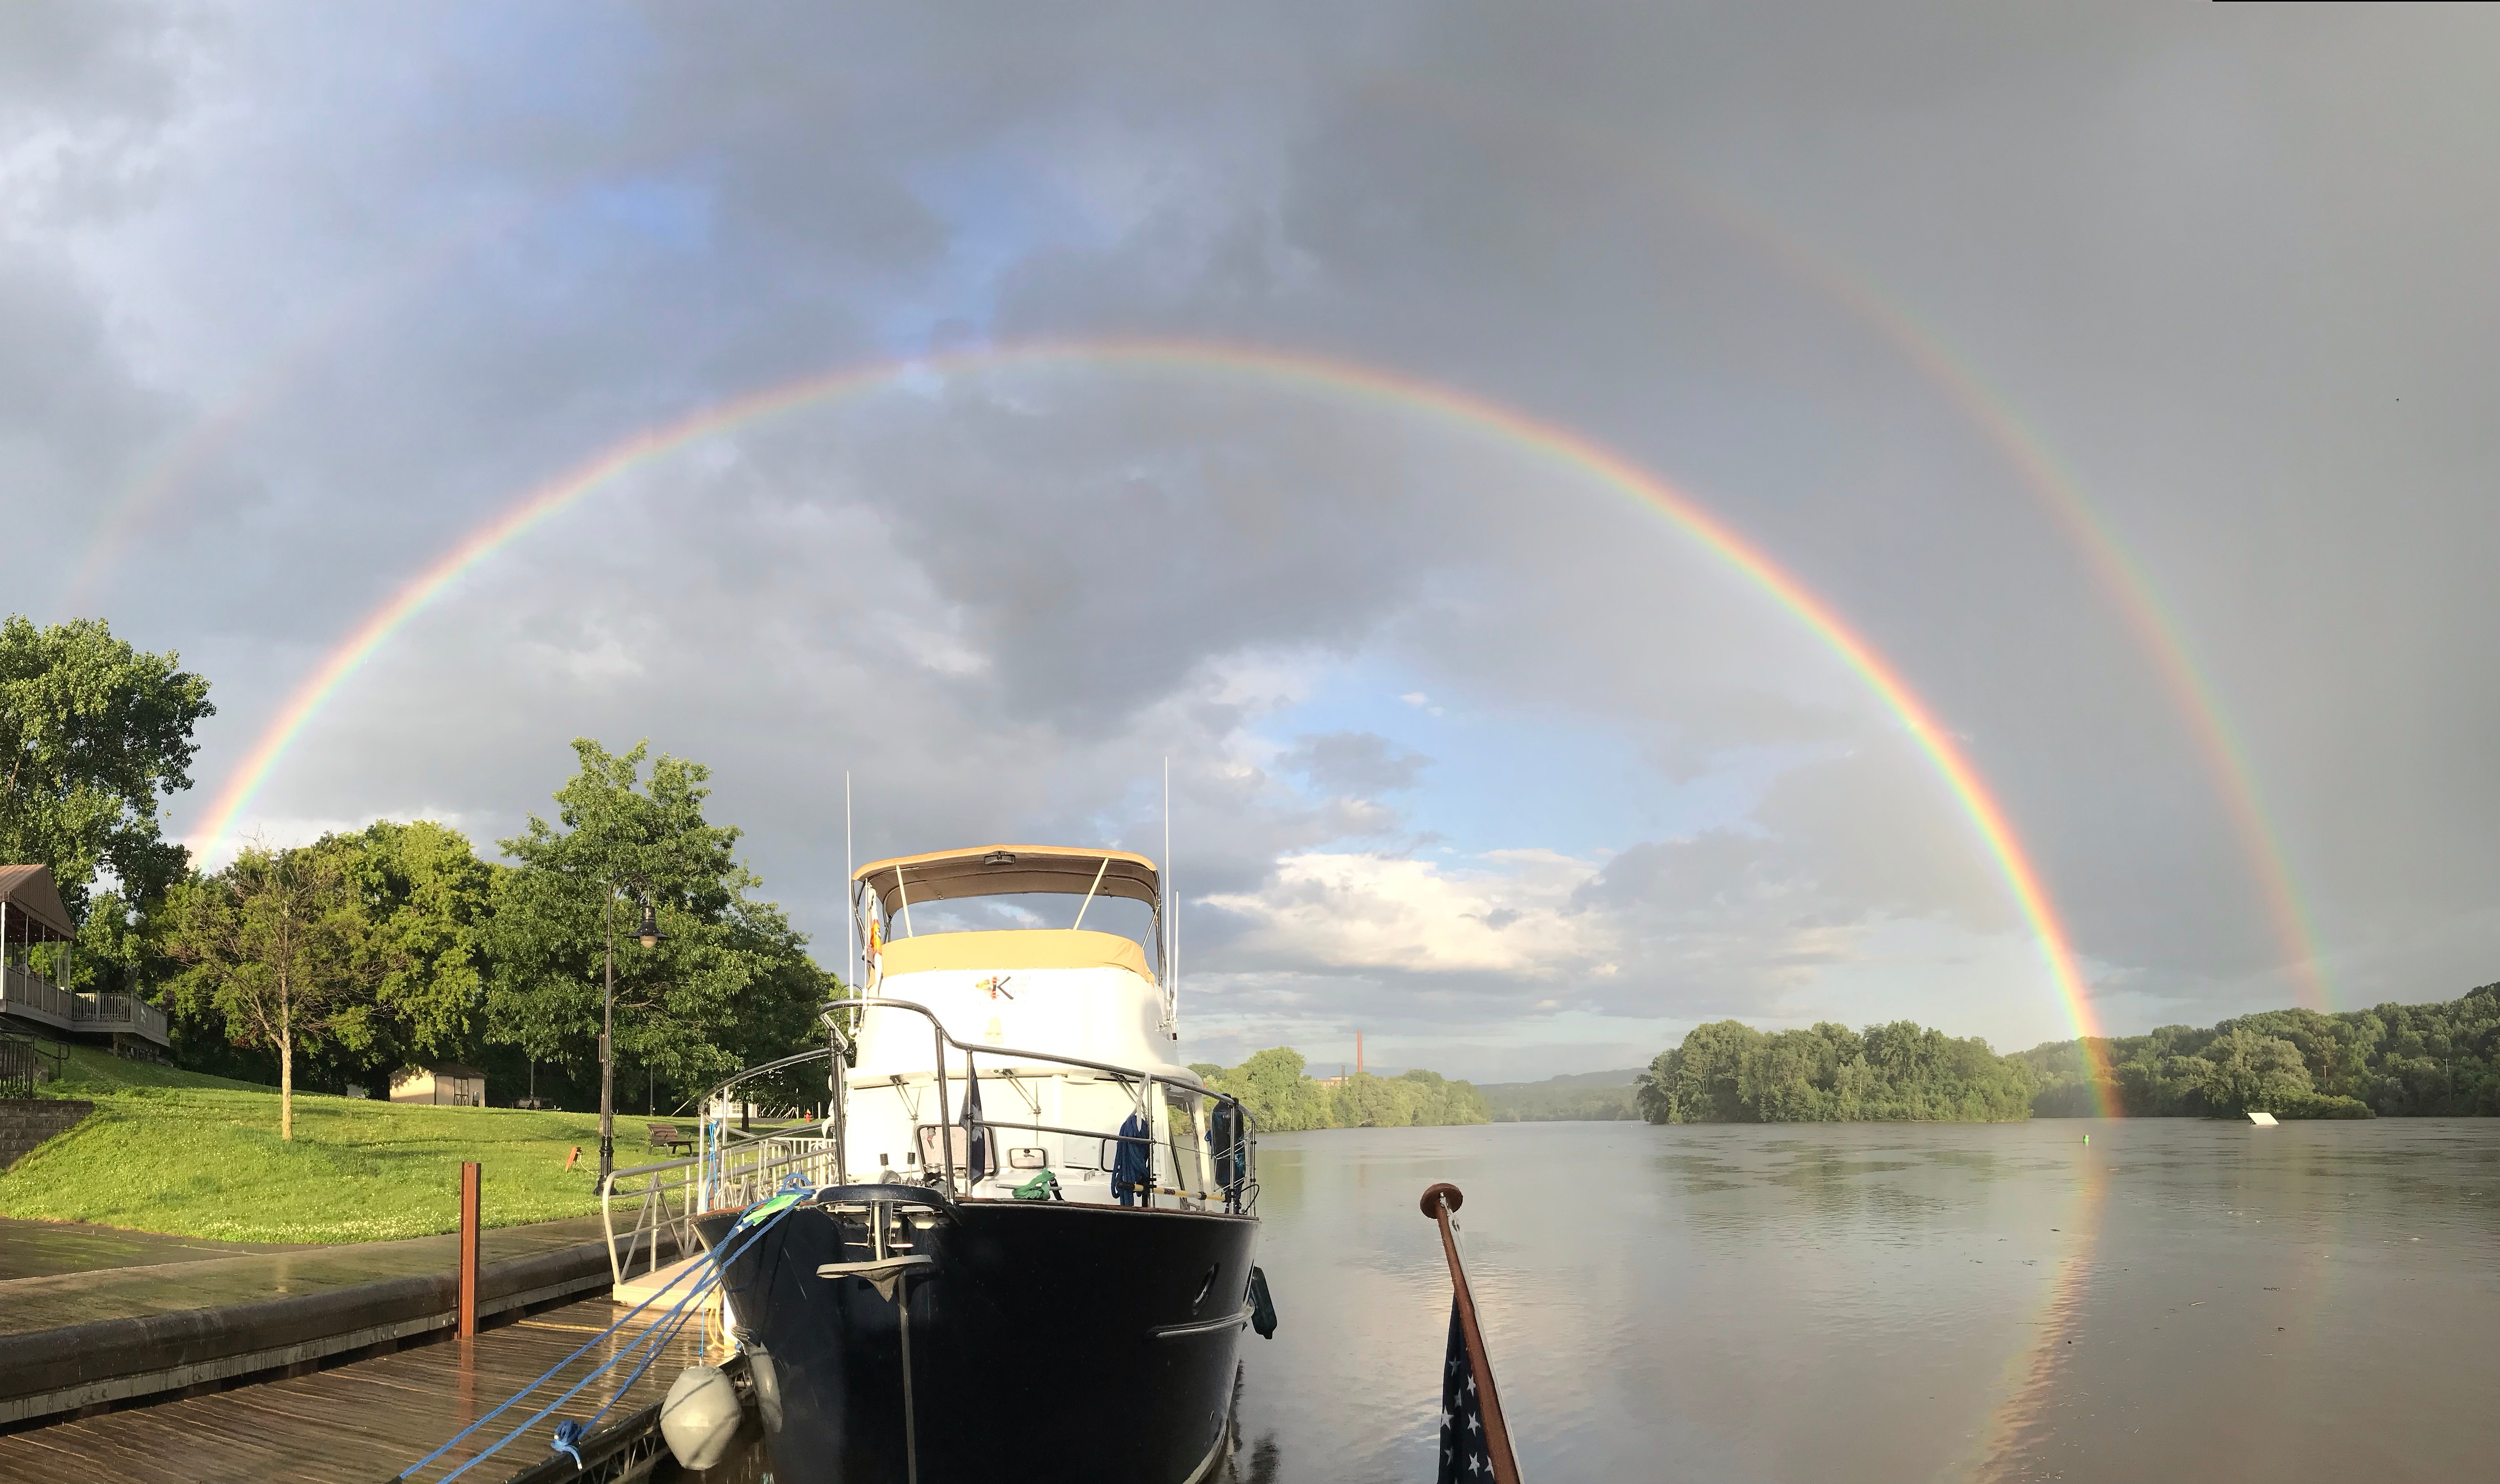 Double rainbow over the boat